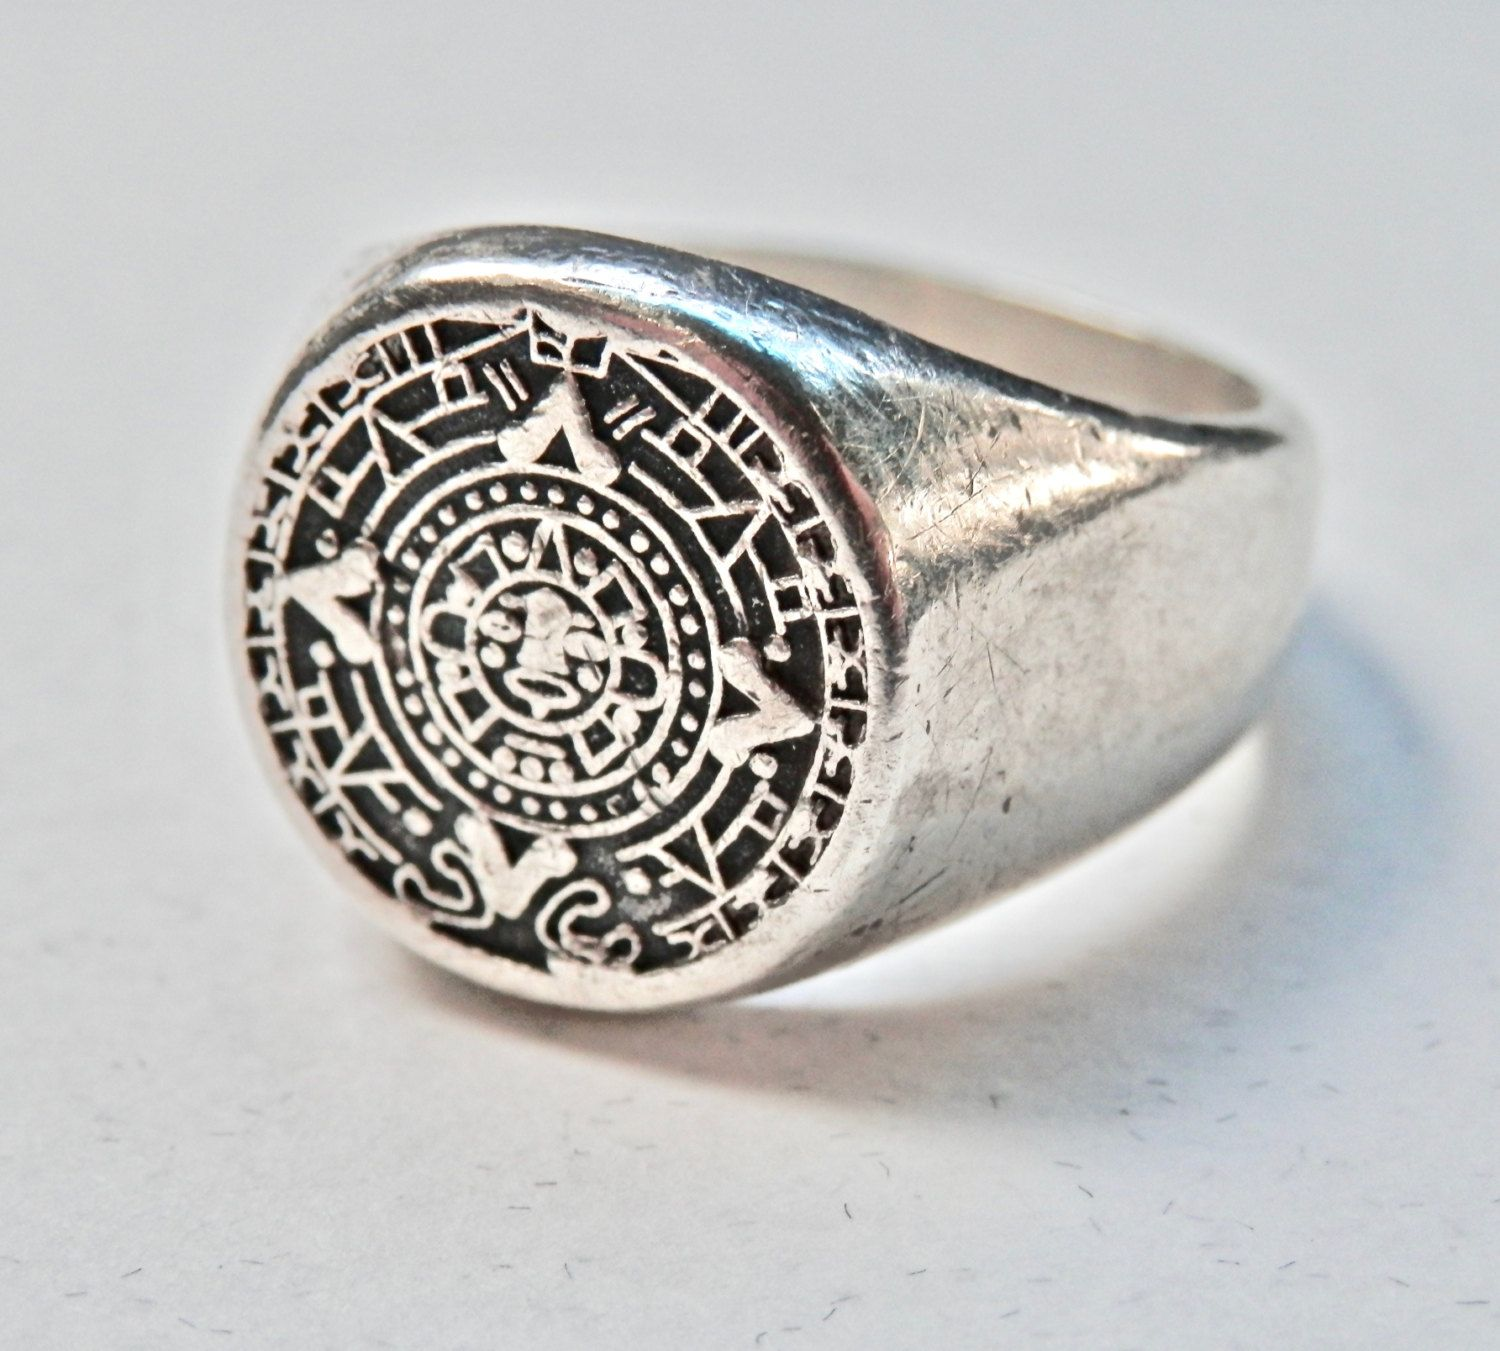 Mexican Ring Vintage Mexican Silver Mens Ring Mayan Calendar Ethnic Jewelry  Vintage Man Size 10.5 Ring 925 Tribal Jewelry Mens Jewelry by  TheJewelryChain on ... 5d93b2a97534